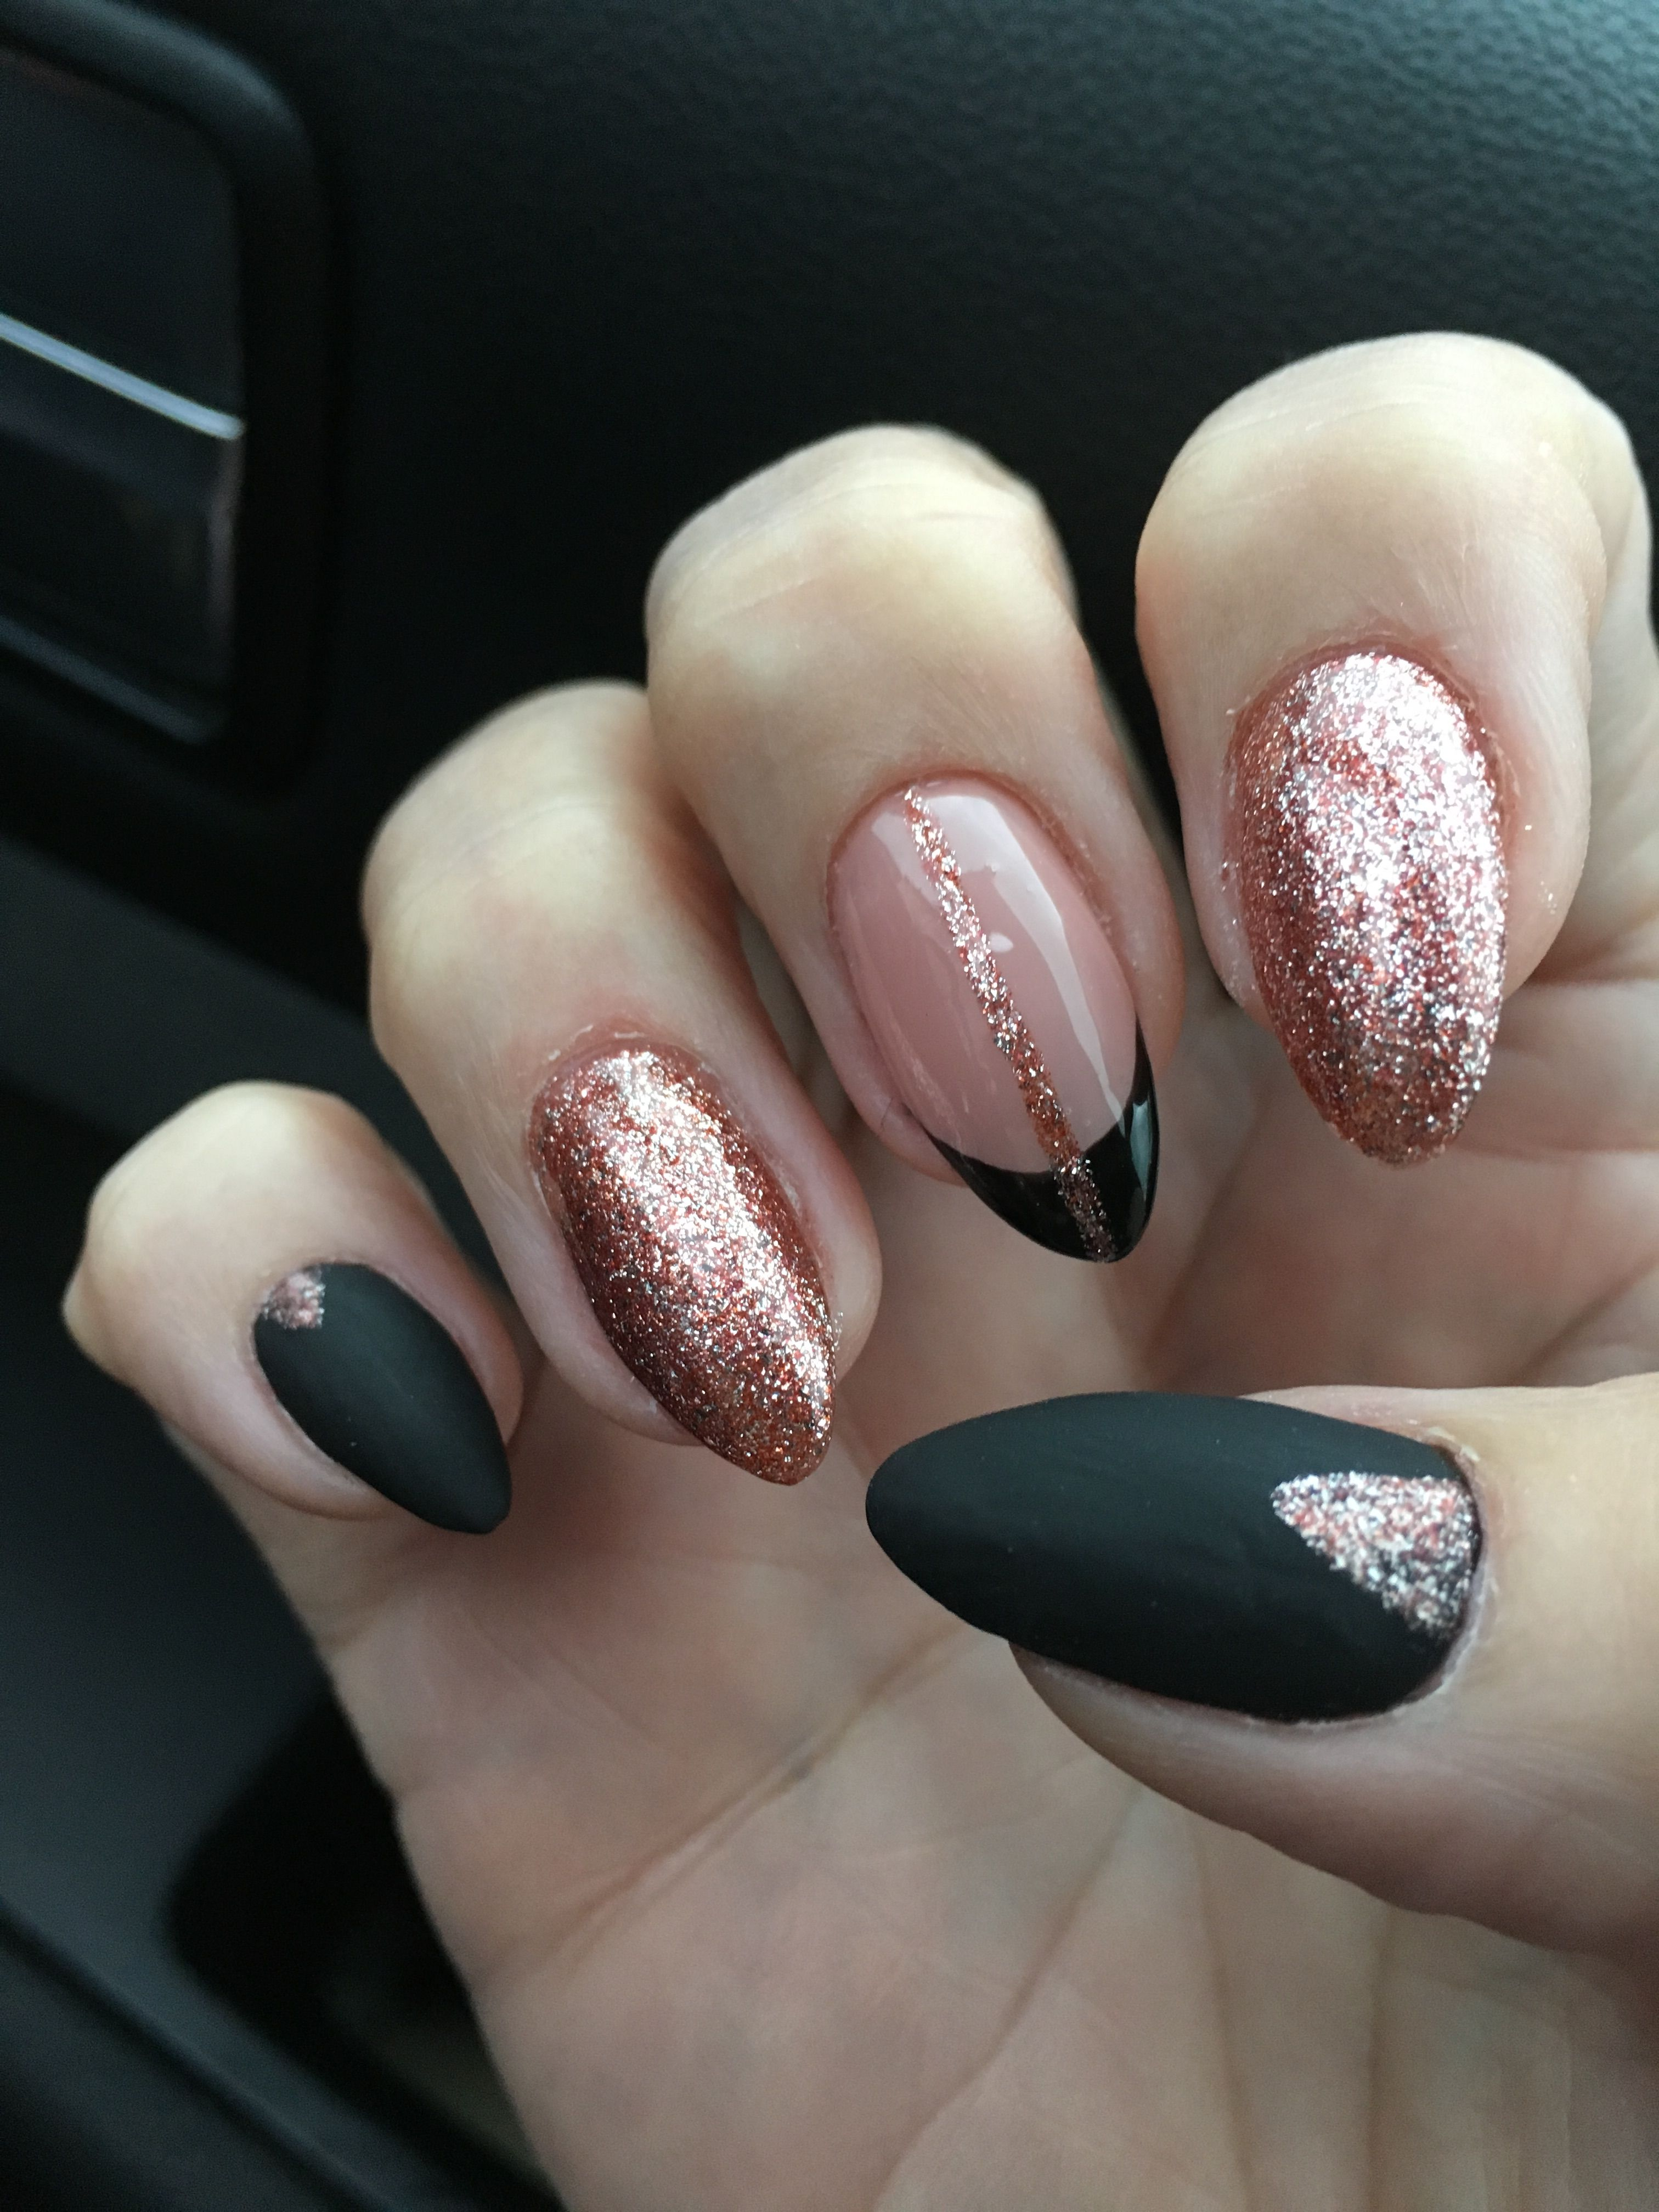 Pin On Beauty And Nails